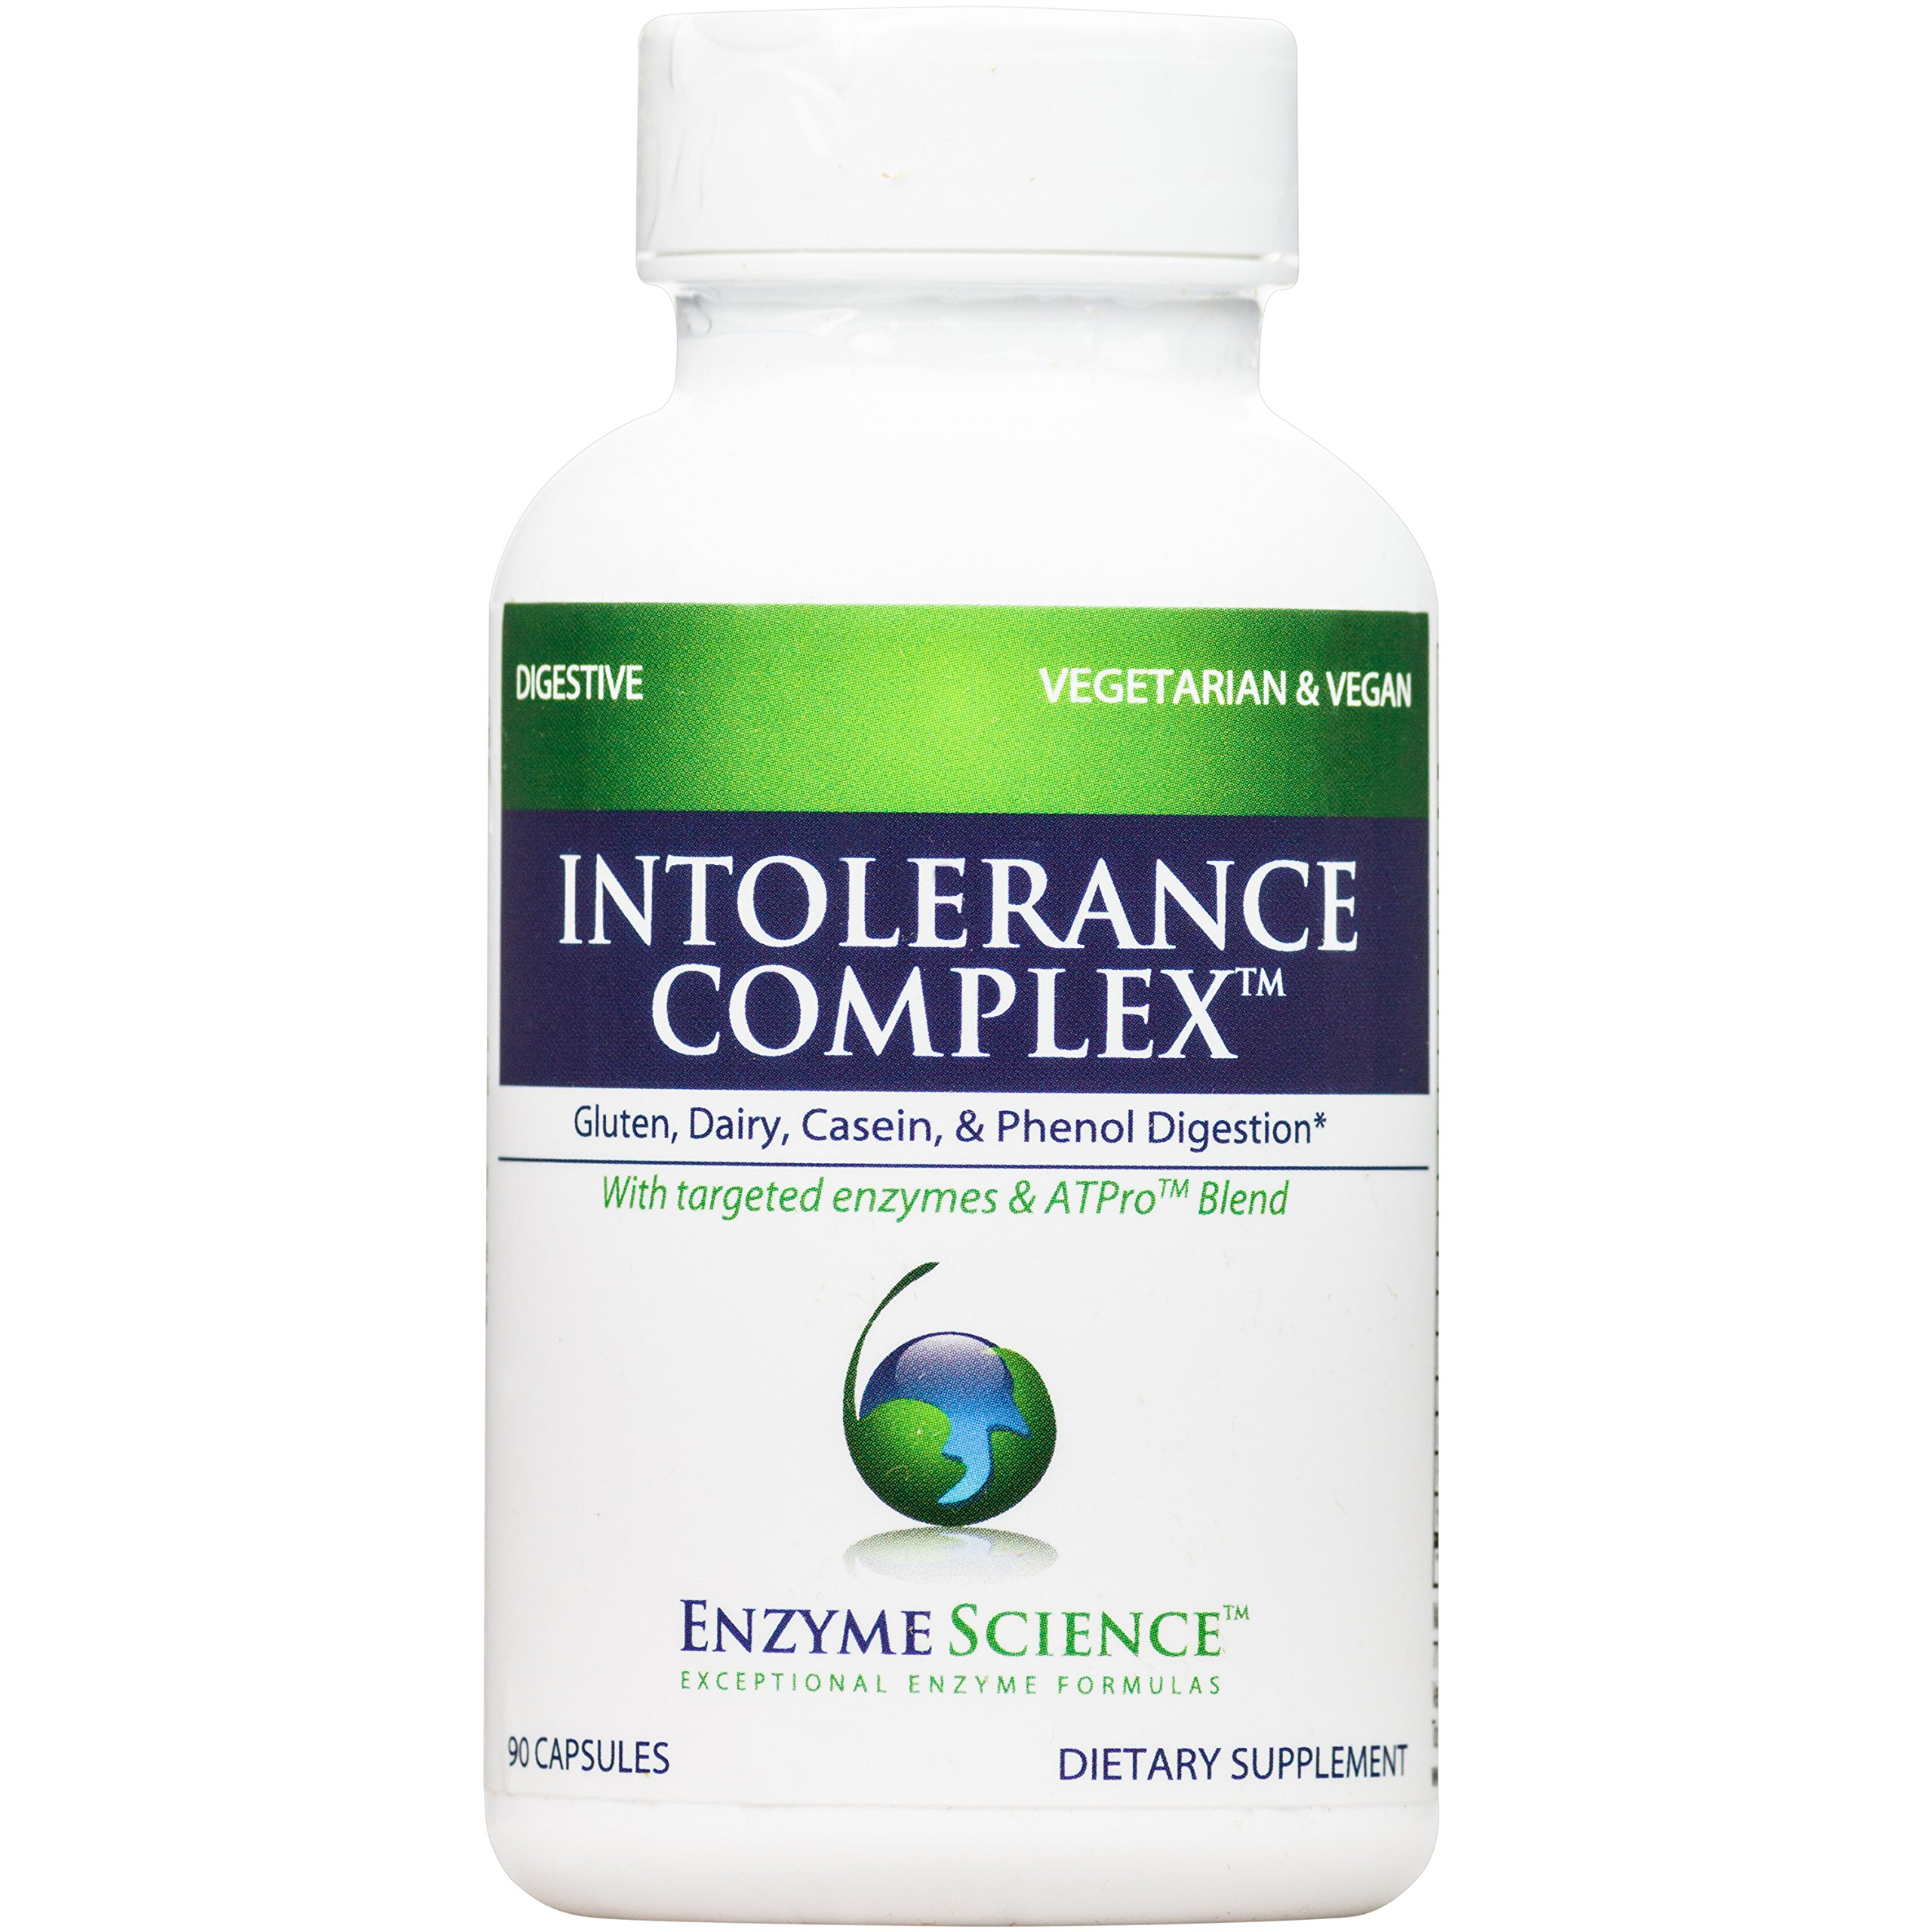 Enzyme Science - Intolerance Complex, Comprehensive Support to Relieve Common Digestive Sensitivities to Dairy, Lactose, Gluten and Casein with Enzymes and Probiotics, Vegan, 90 Capsules by Enzyme Science